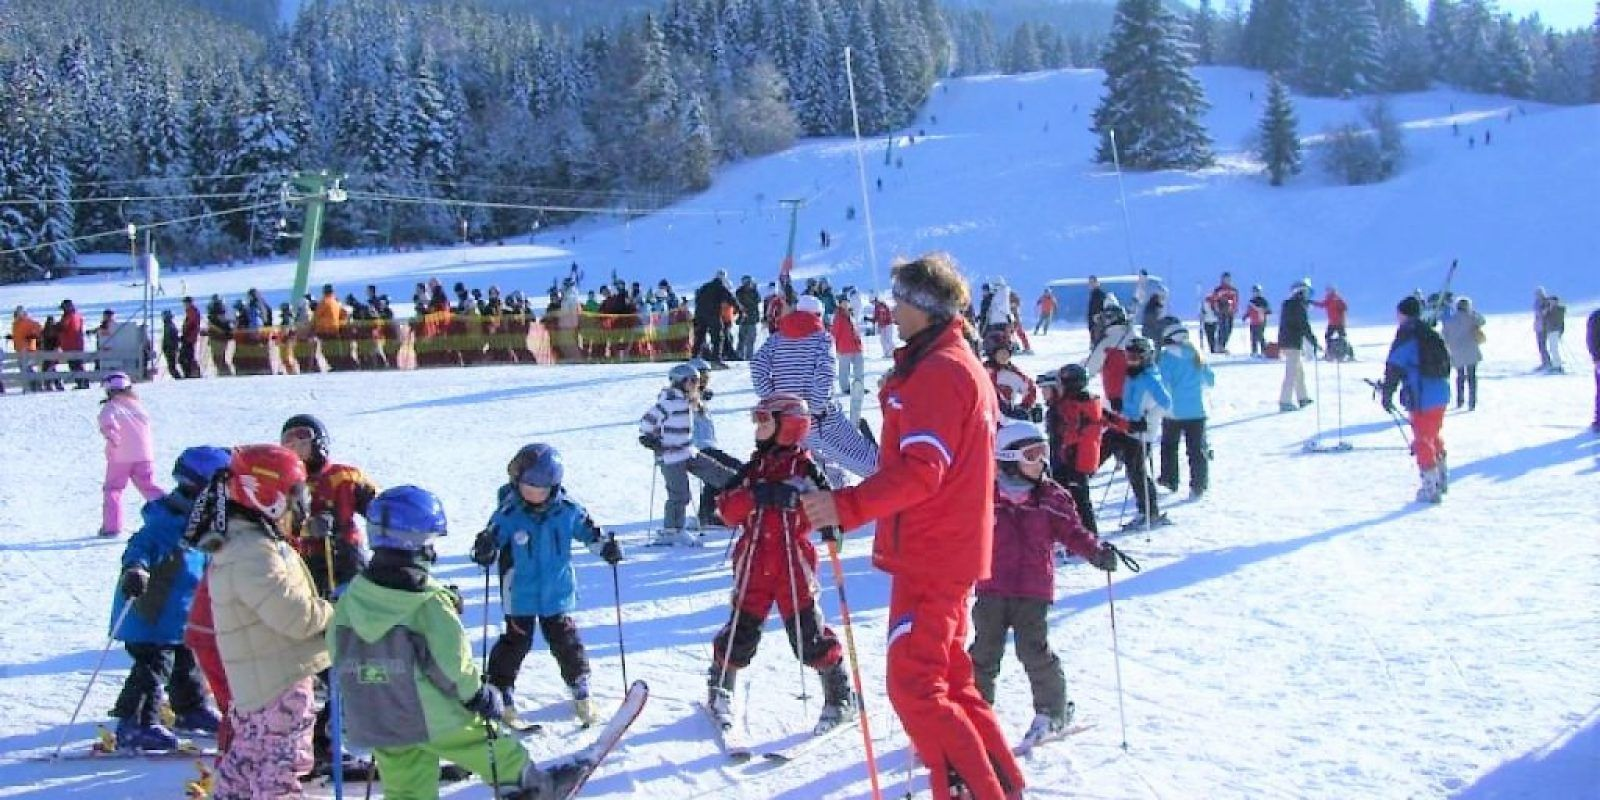 Ski Resort With Trainers For Skiing Lessons Copper Mountain Skiing Lessons Mountain Style